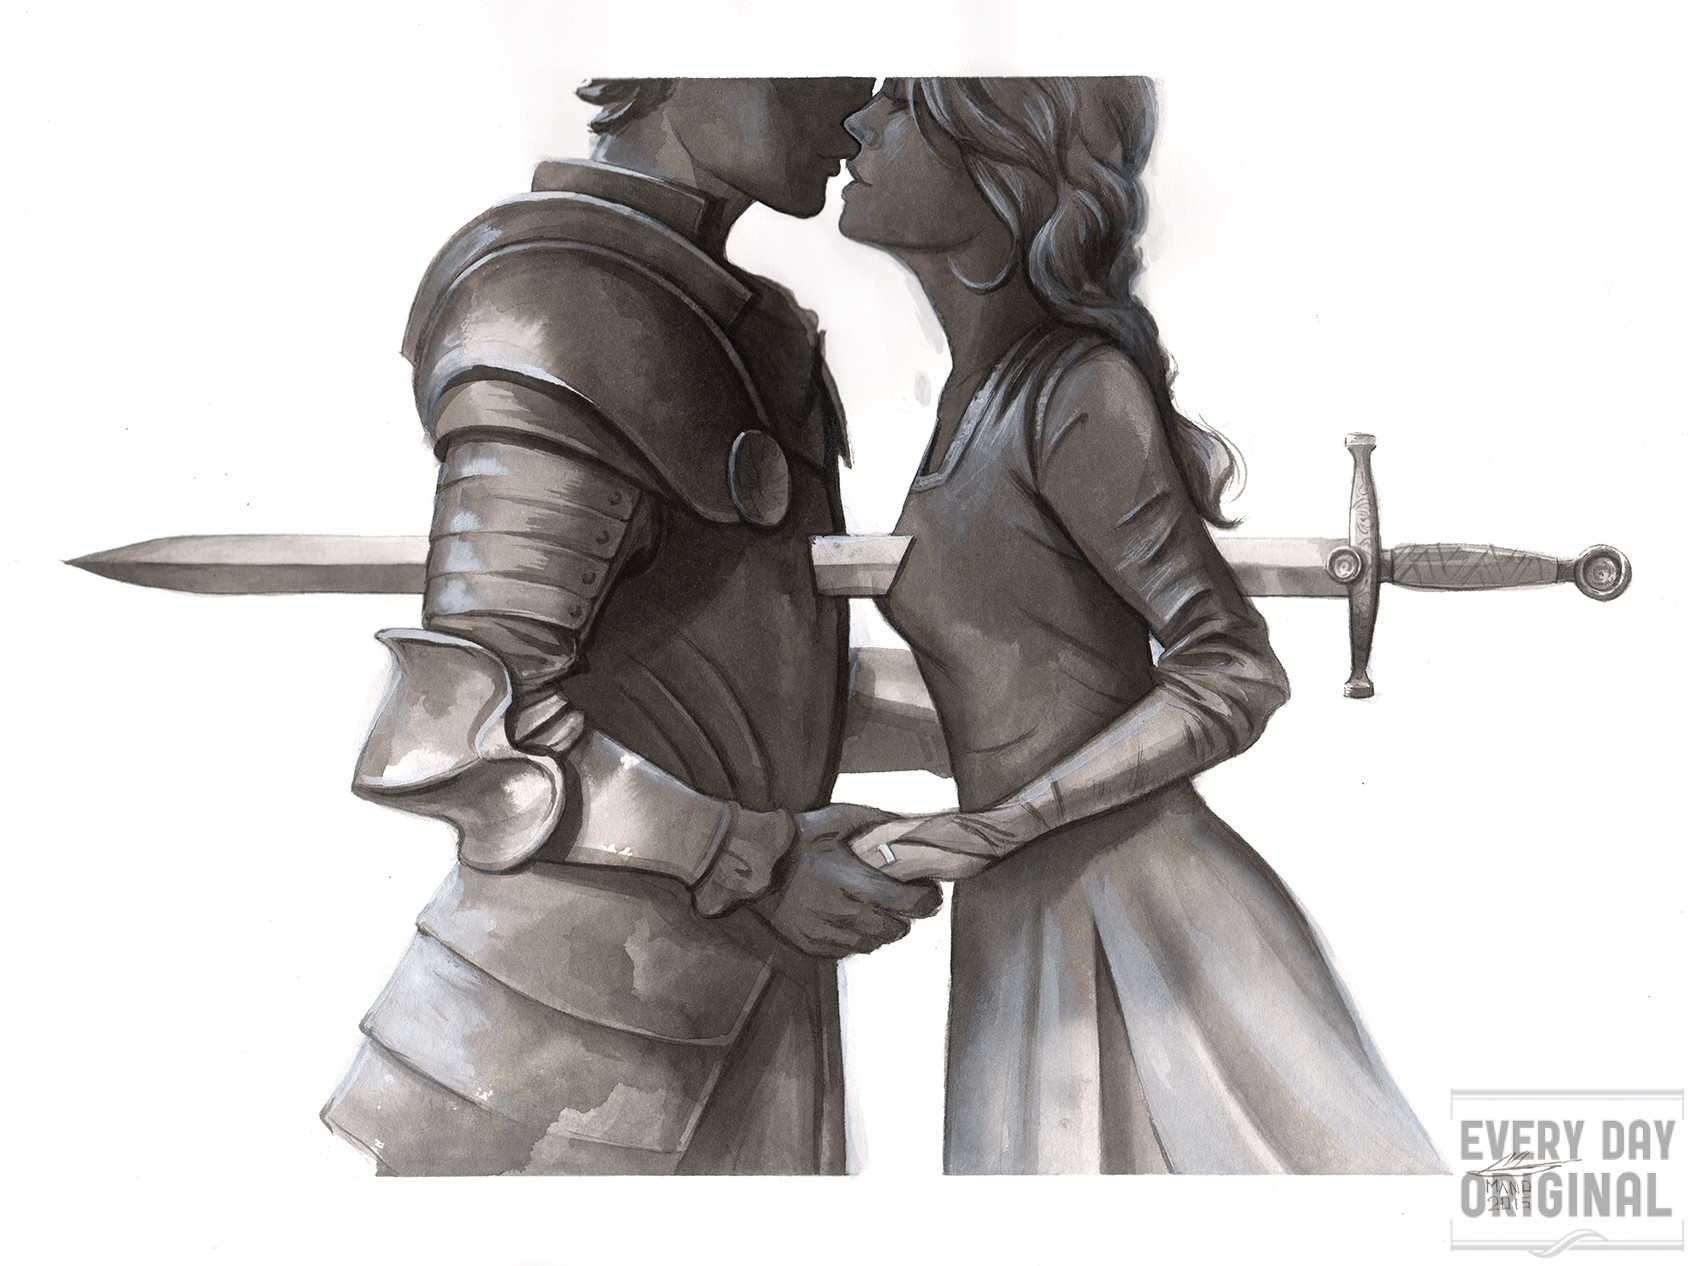 guinevere and lancelot relationship quizzes